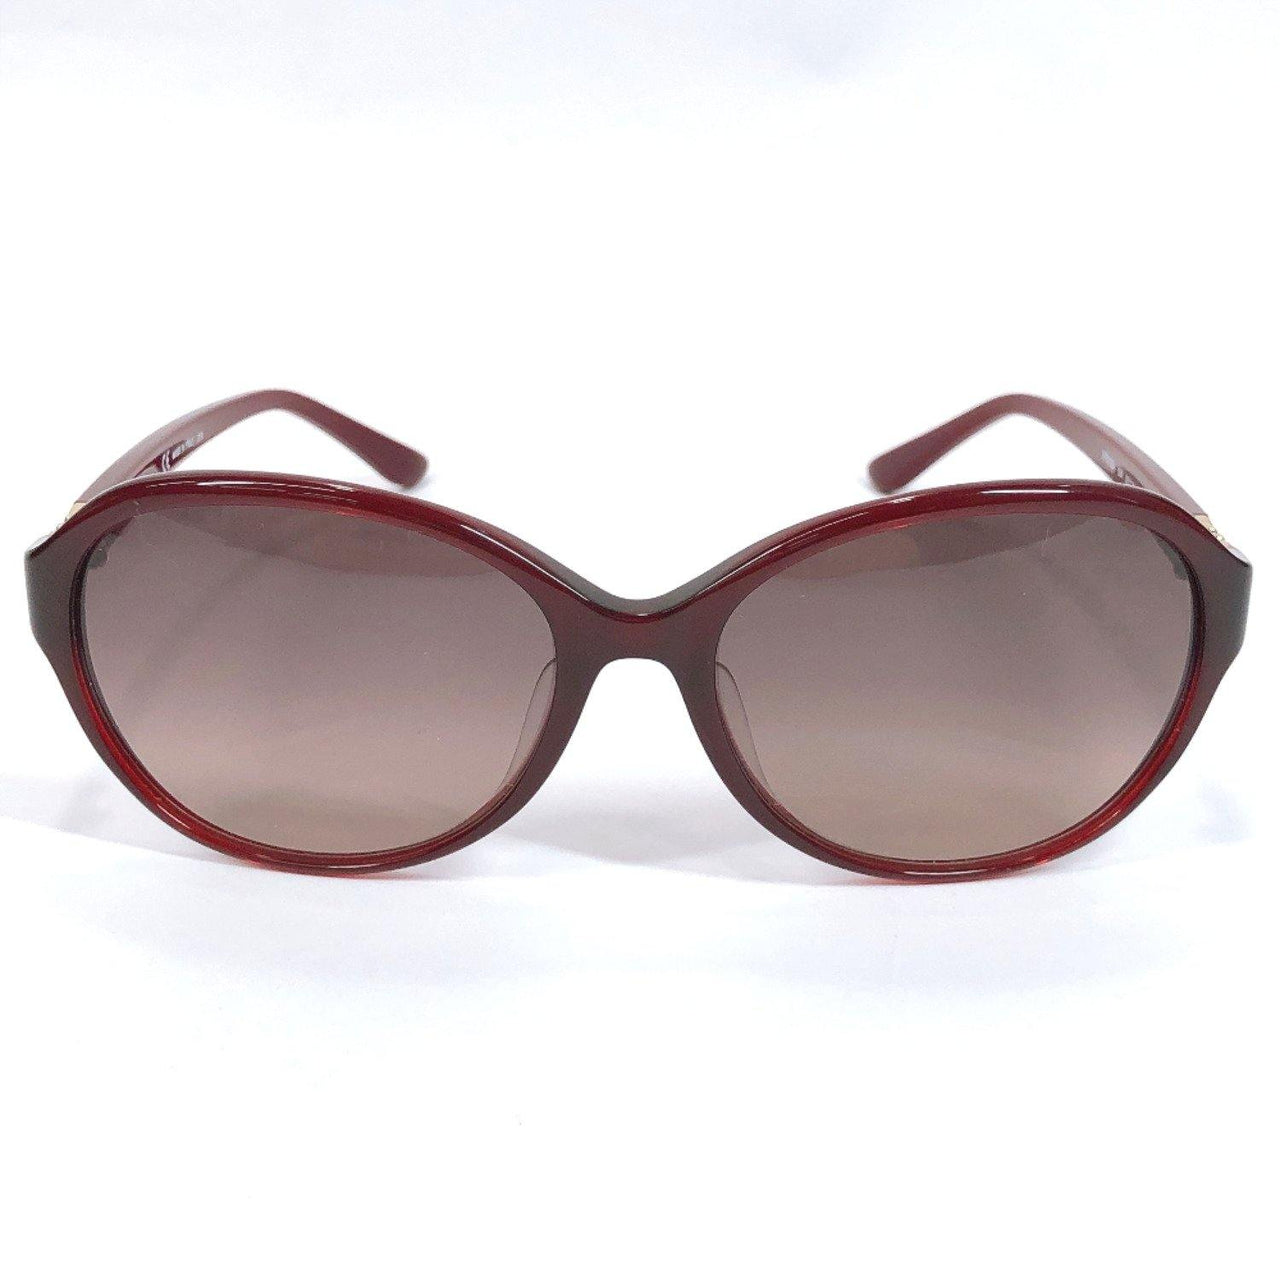 Salvatore Ferragamo sunglasses SF804SA 604 Gancini Asian fit UV cut Synthetic resin Bordeaux Burgundy Women Used - JP-BRANDS.com